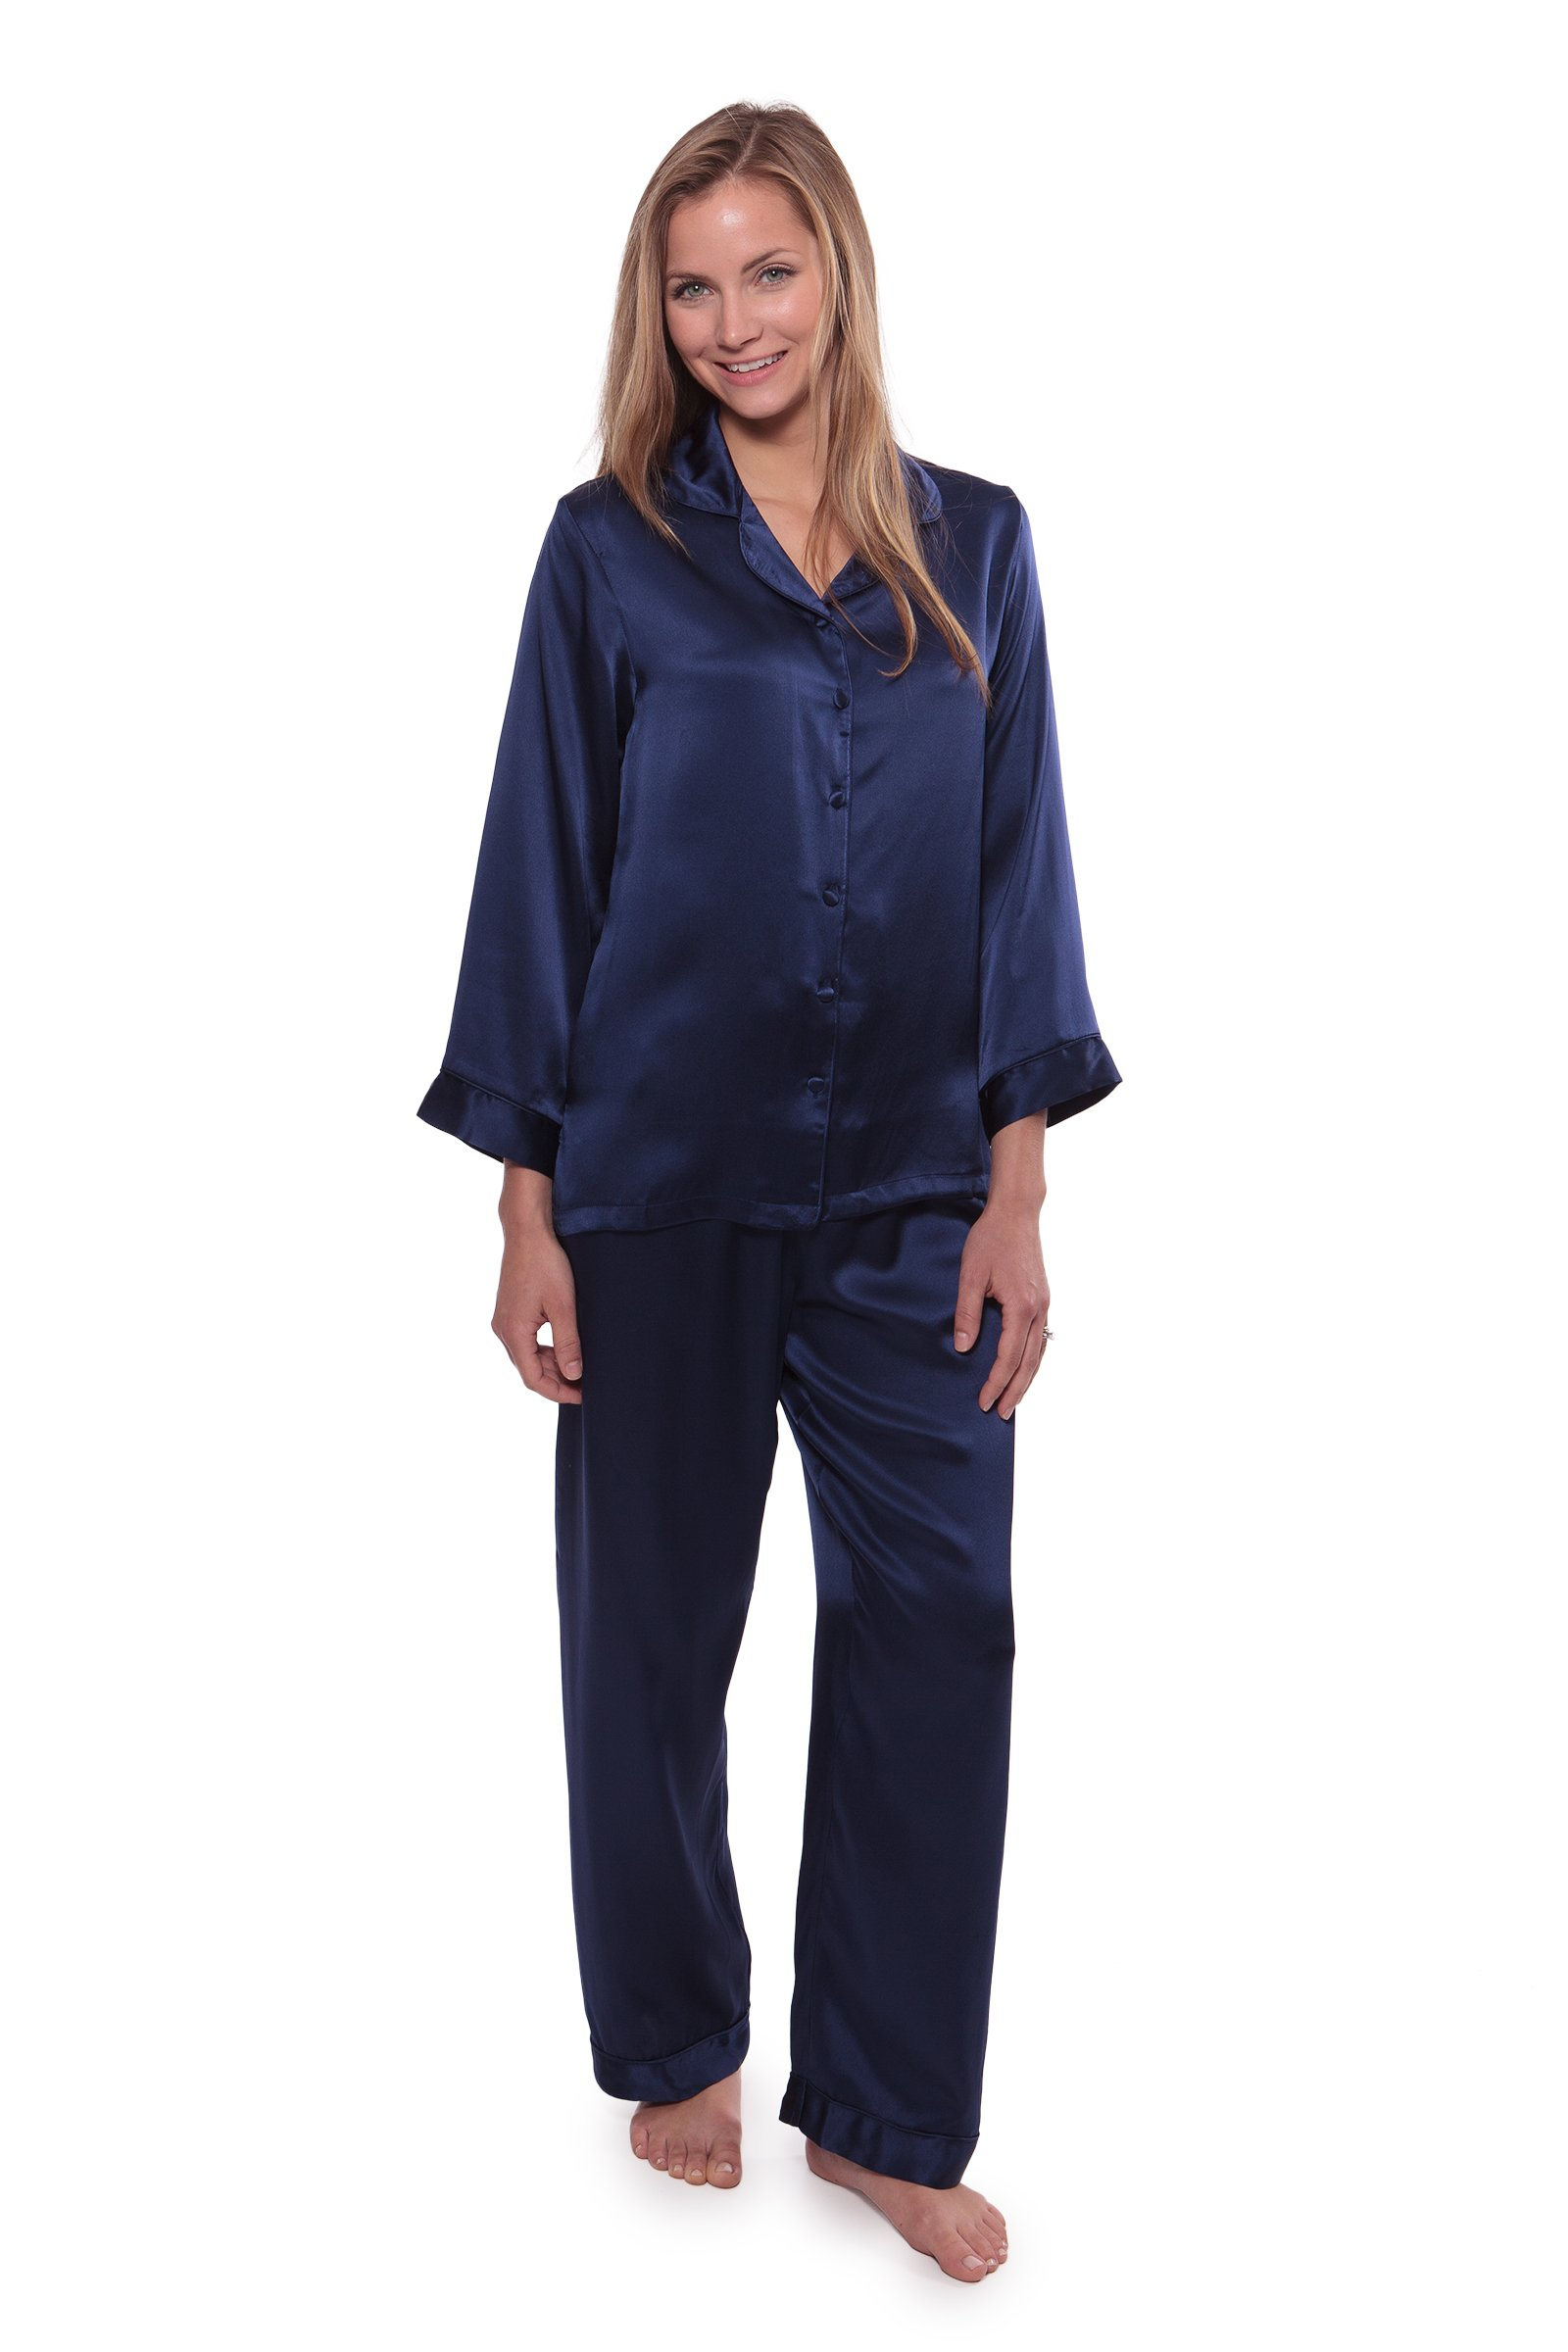 Women's 100% Silk Pajama Set - Luxury Sleepwear Pjs by TexereSilk (Morning Dew, Gulf Blue, Medium) Cool Gifts for Holidays Birthday WS0001-GFB-M